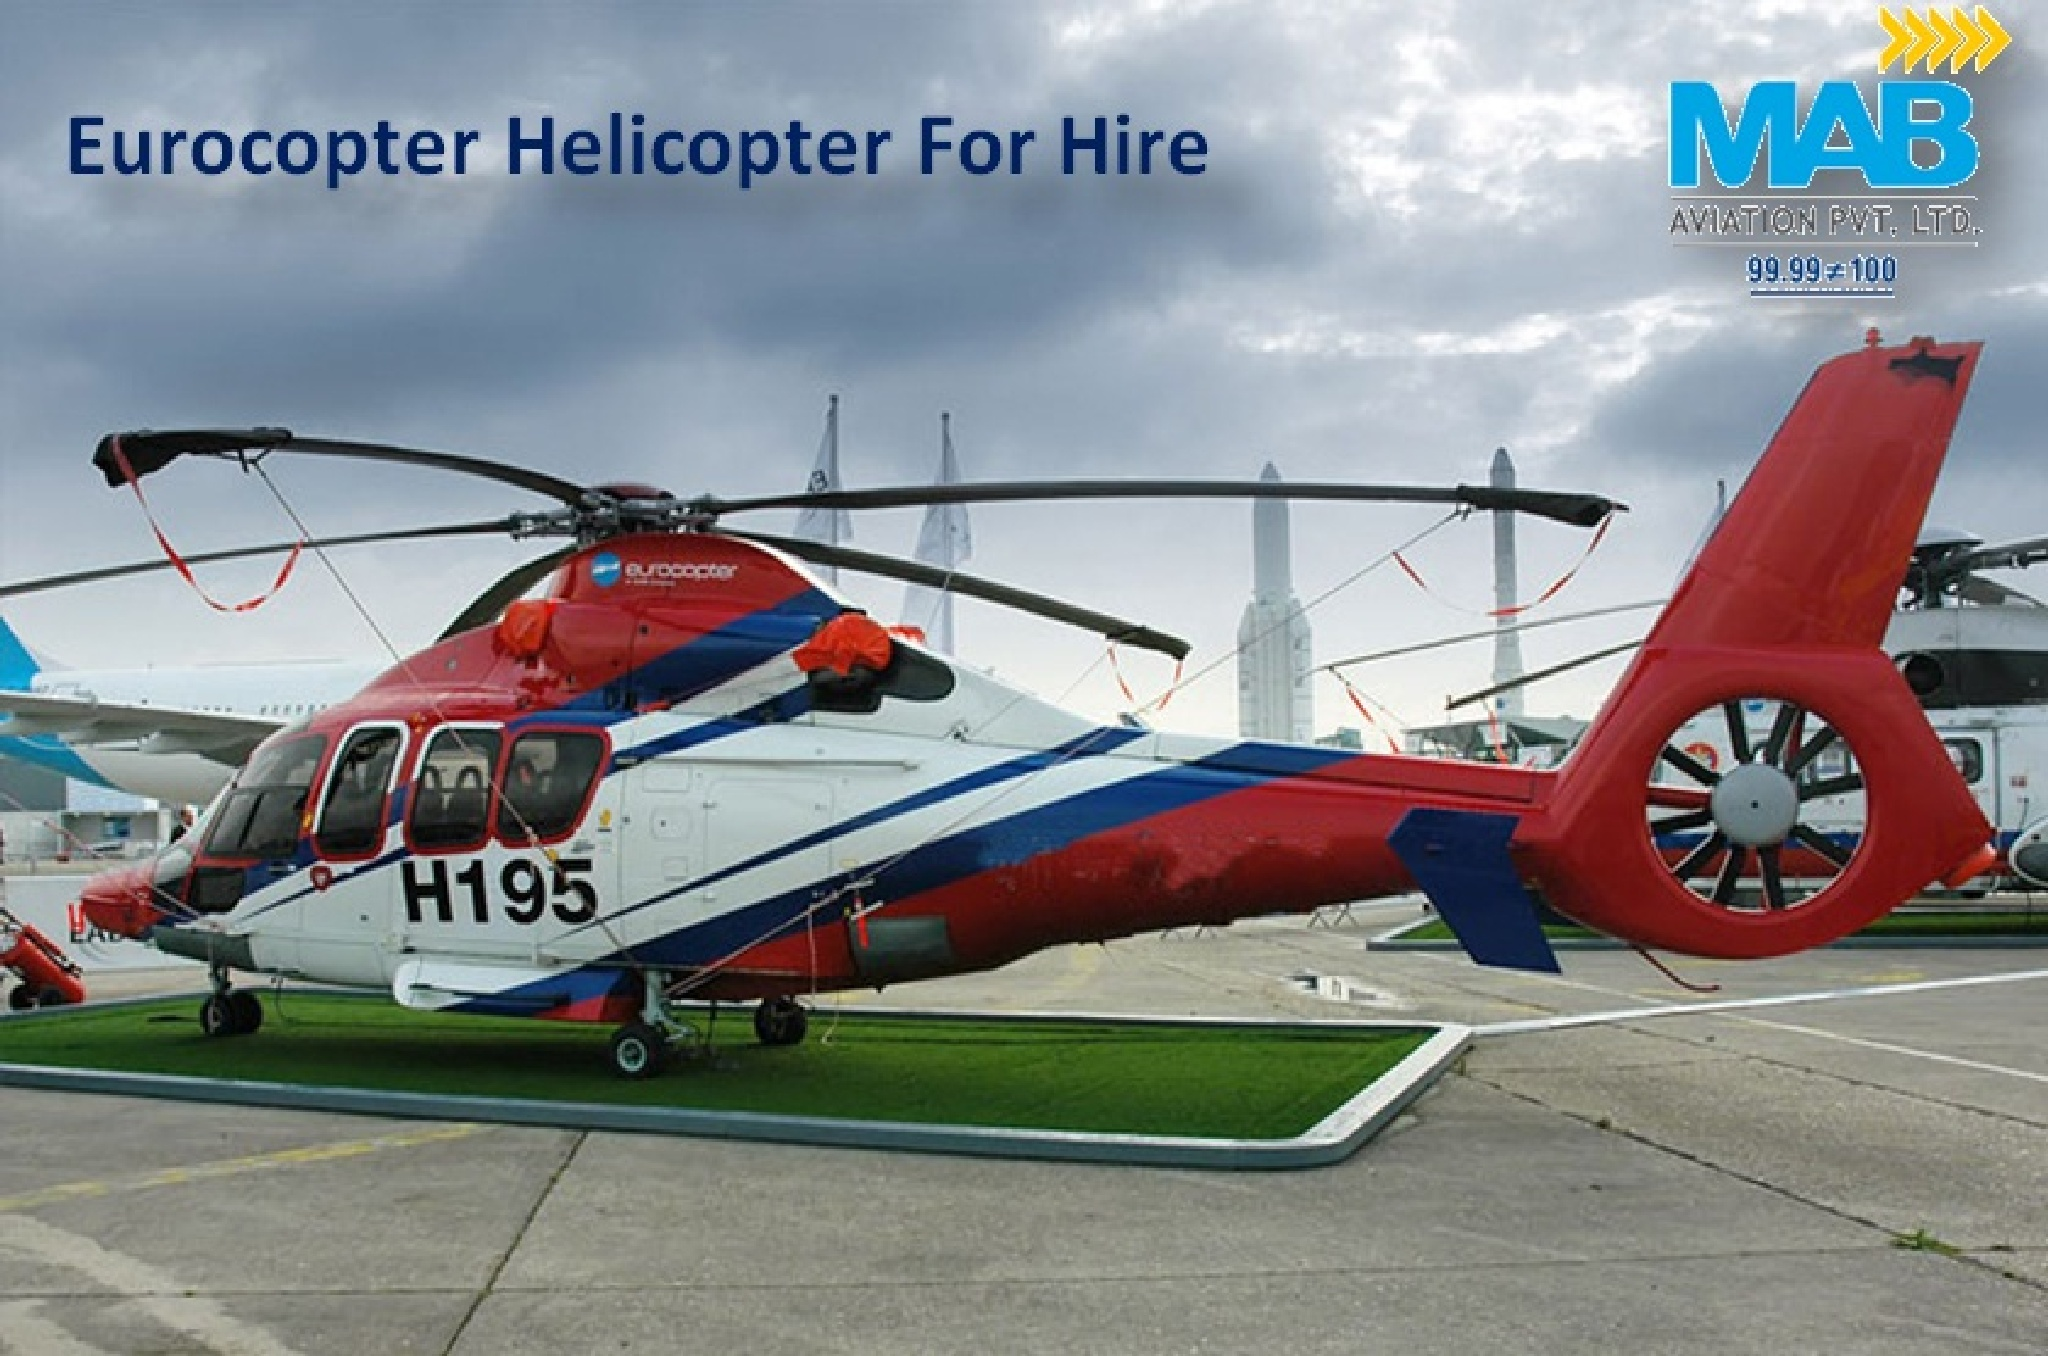 Hire Eurocopter Helicopter – Eurocopter Ecureuil AS350 B3 by mabaviation